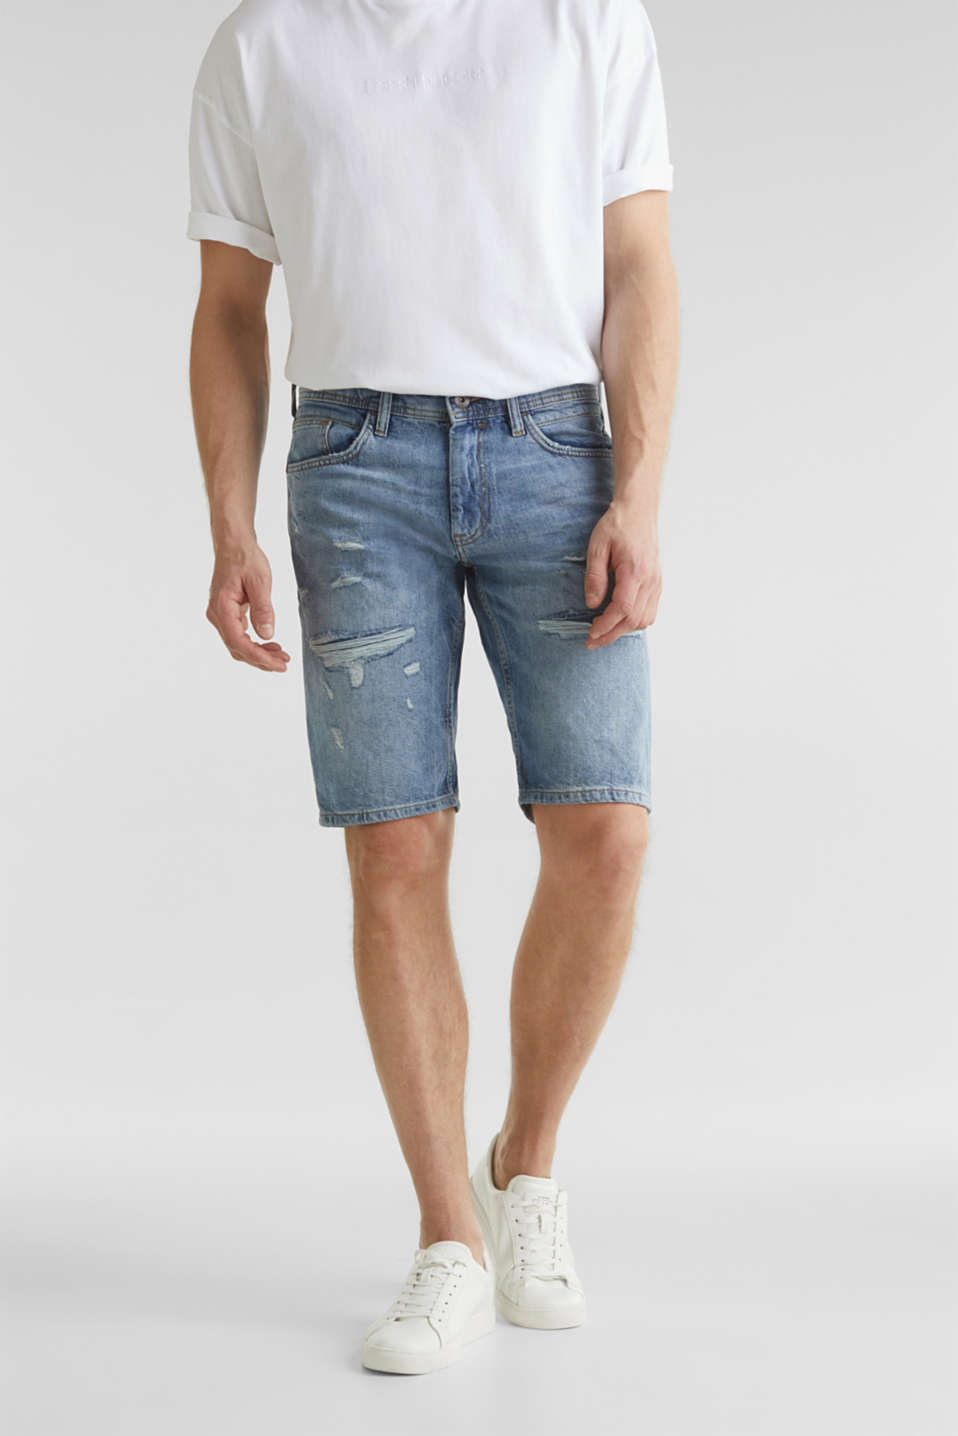 edc - Denim shorts with a vintage finish